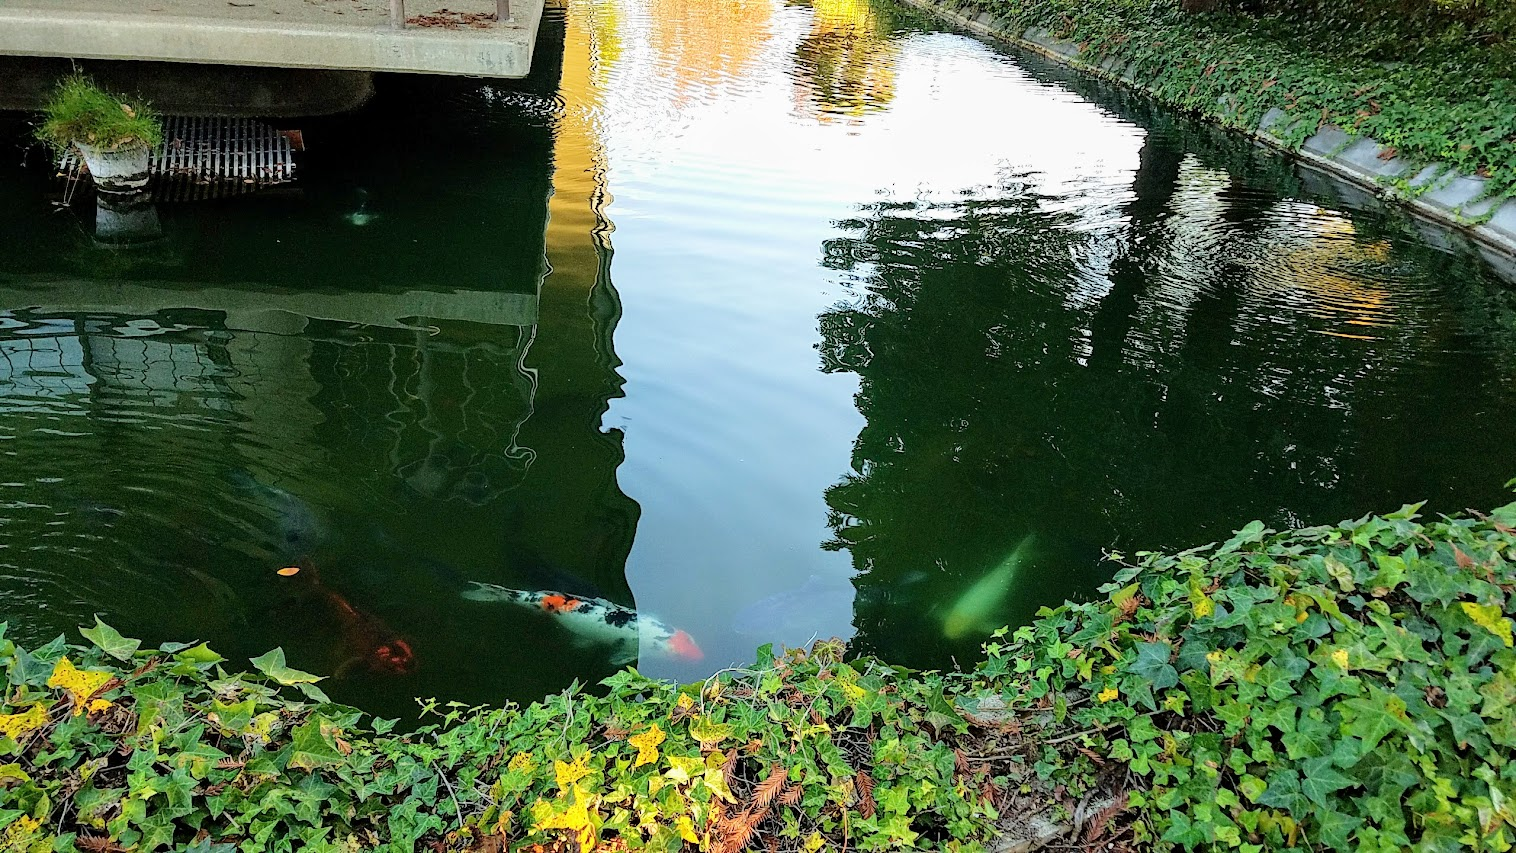 A look at the peaceful setting at Gekkeikan Sake USA in Folsom with the landscape and koi pond